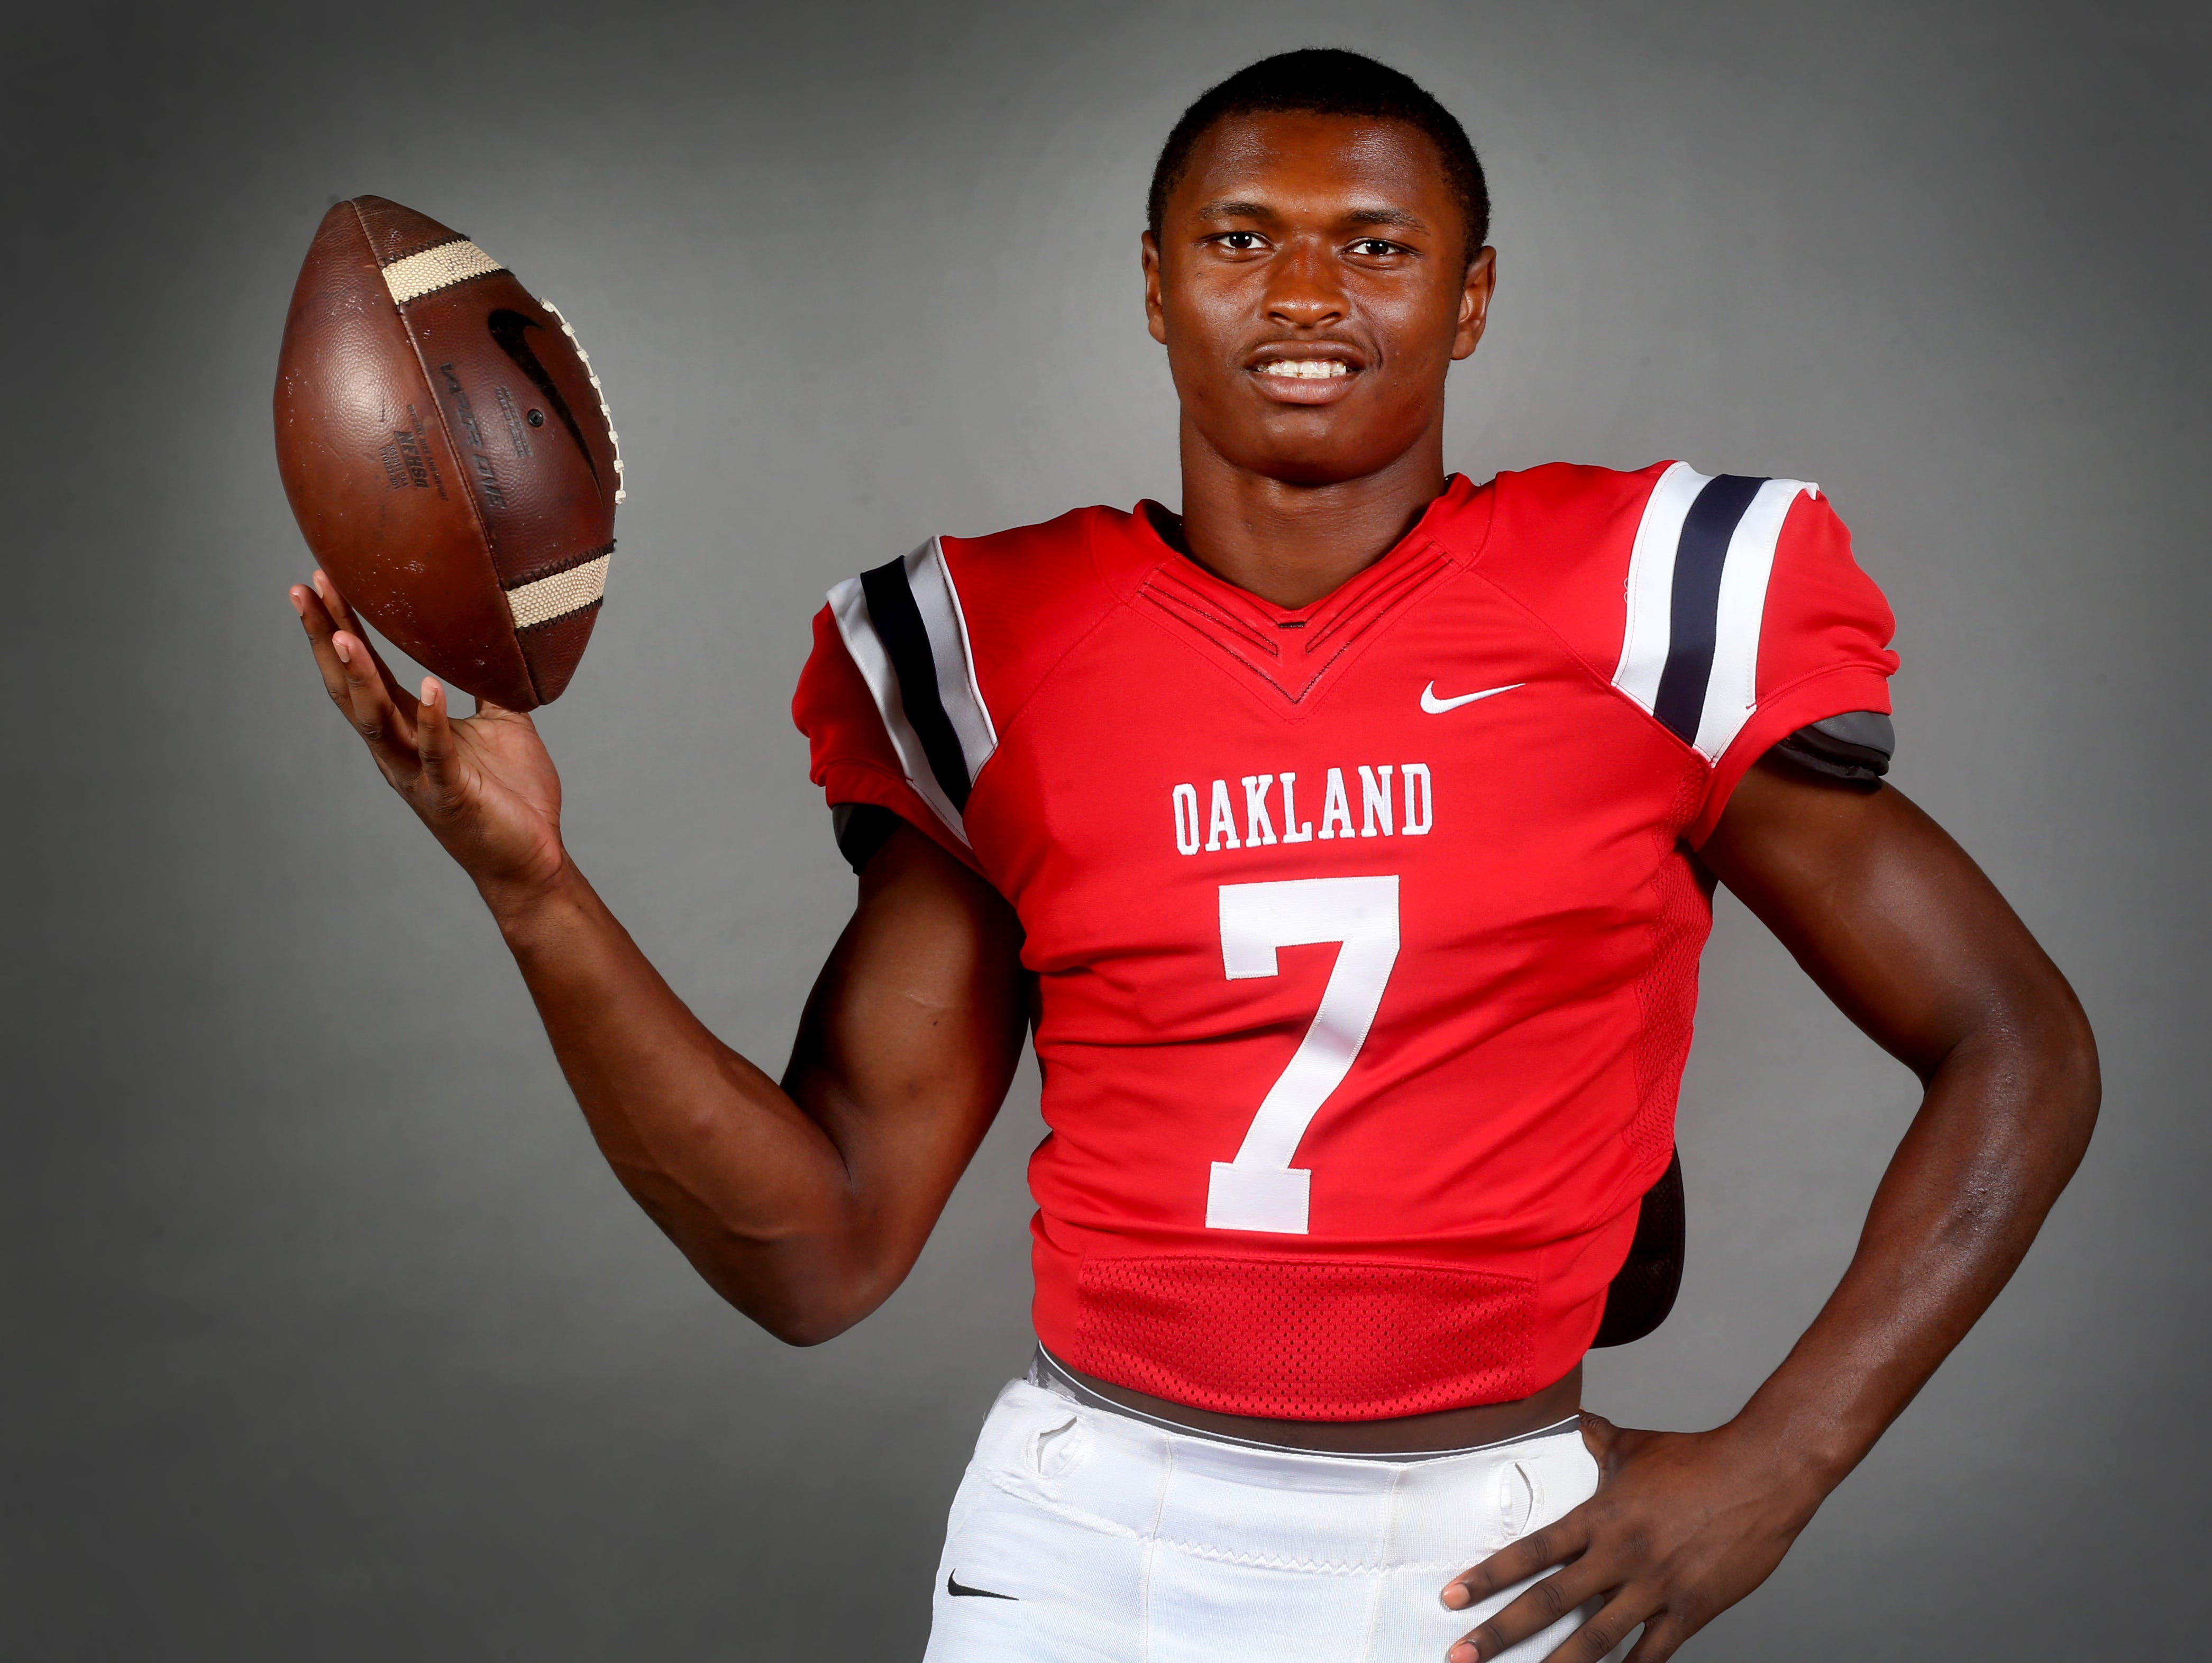 Oakland's JaCoby Stevens will announce his college football decision at 2:30 p.m. Monday at Oakland High School.